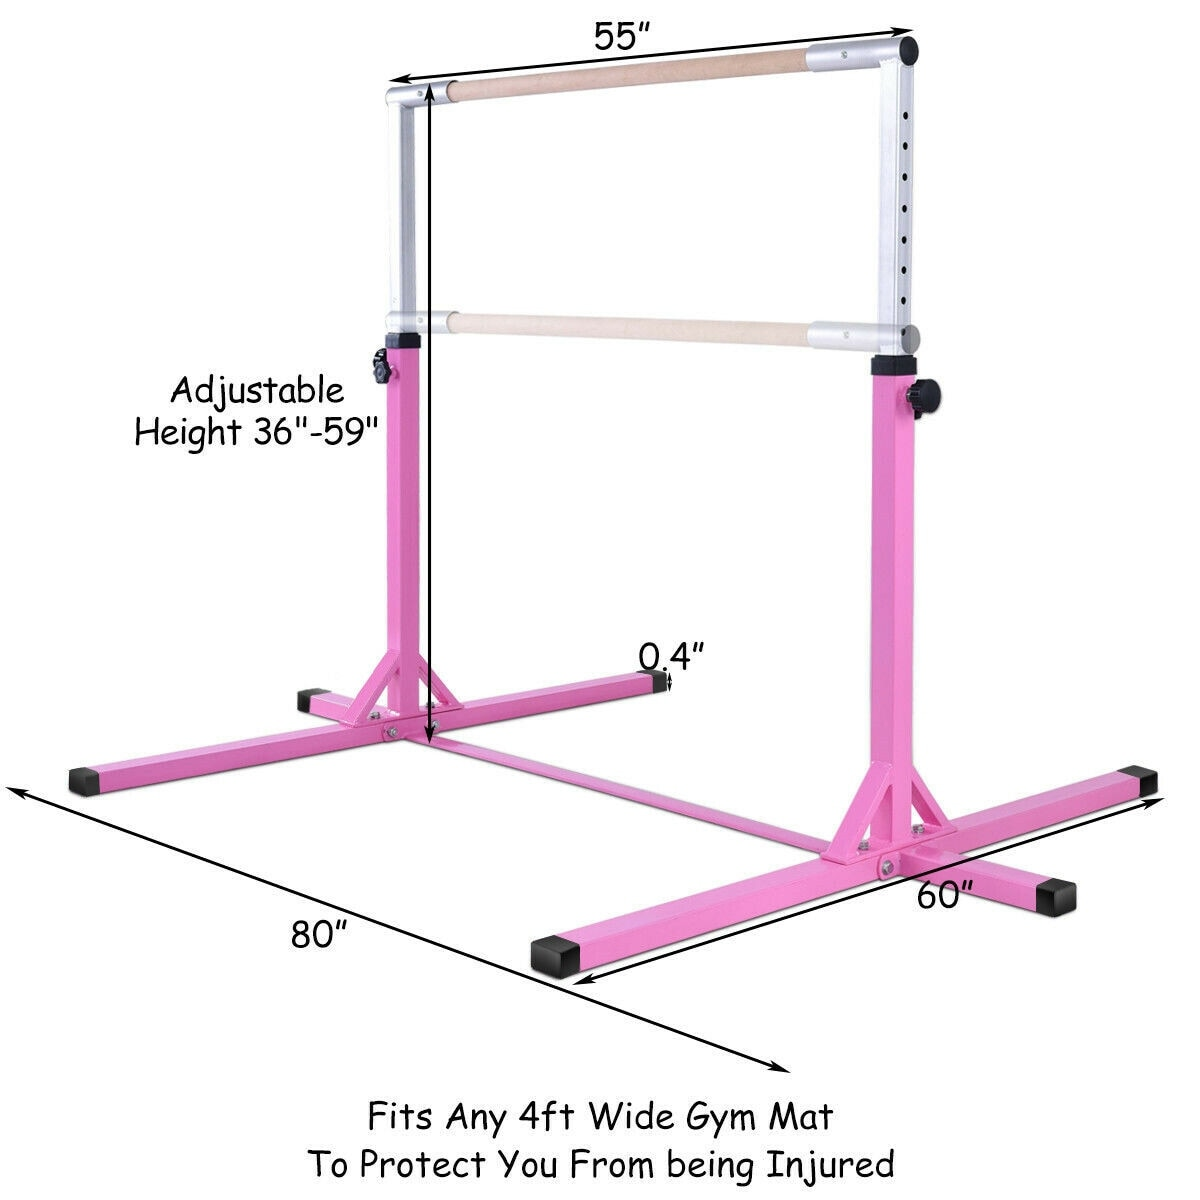 50ae2433a0a0 Shop Goplus Adjustable Steel Horizontal Training Bar Gymnastics Junior Home  Practice - Pink - Free Shipping Today - Overstock - 20708366